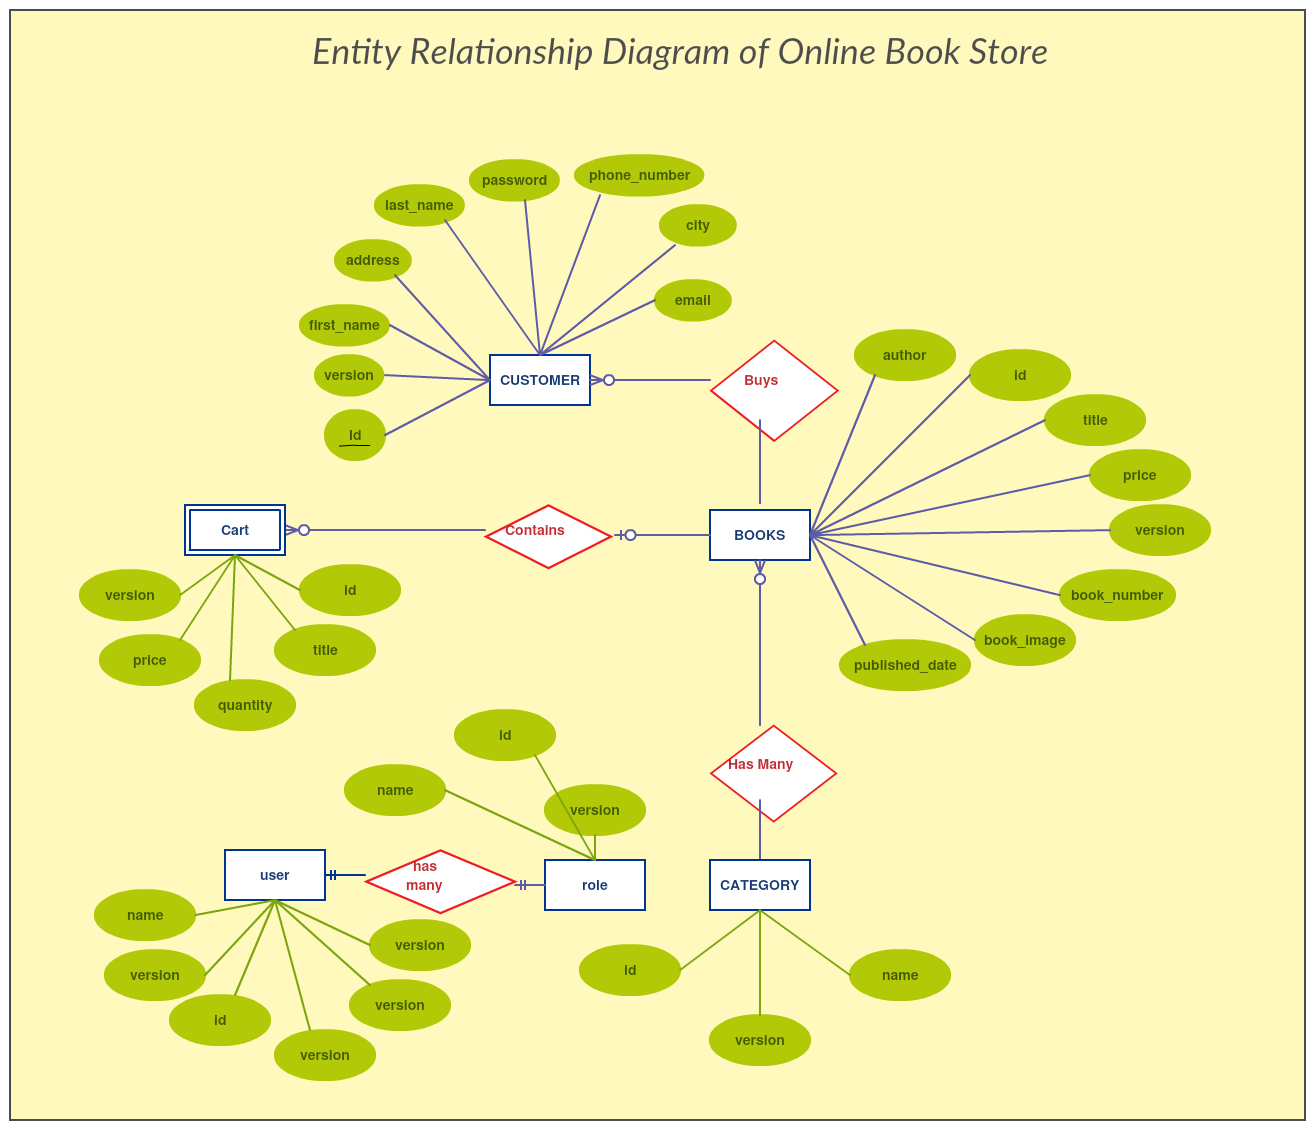 Entity Relationship Diagram Of Online Book Store. The for Entity Relationship Analysis